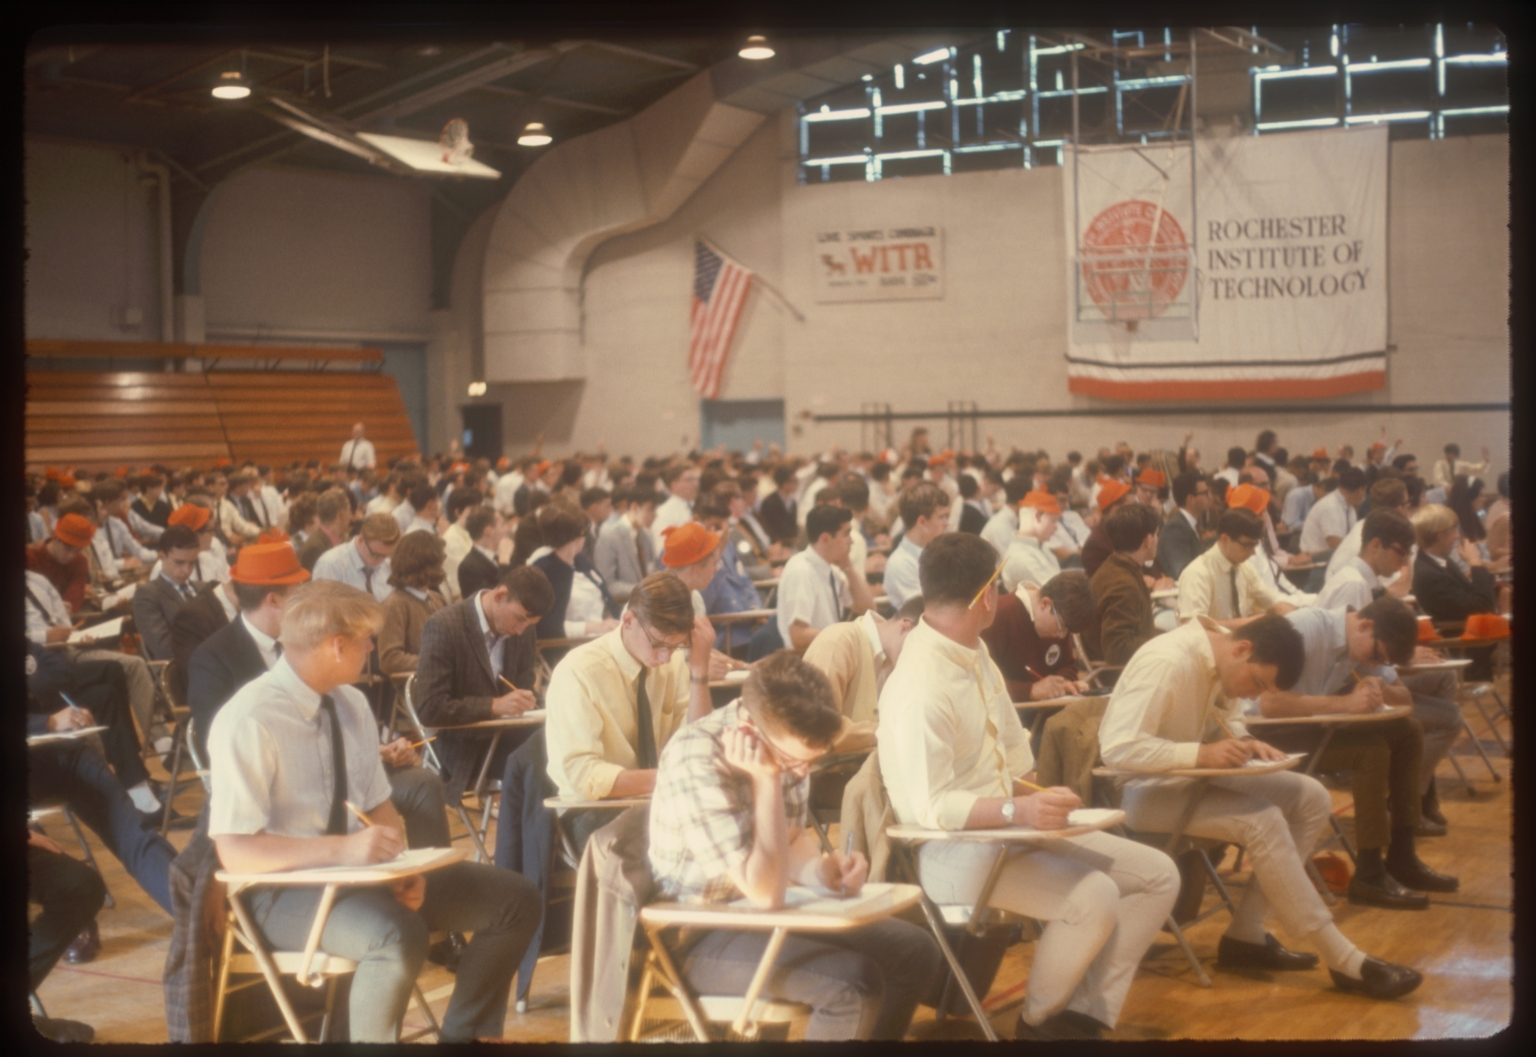 Rochester Institute of Technology student orientation